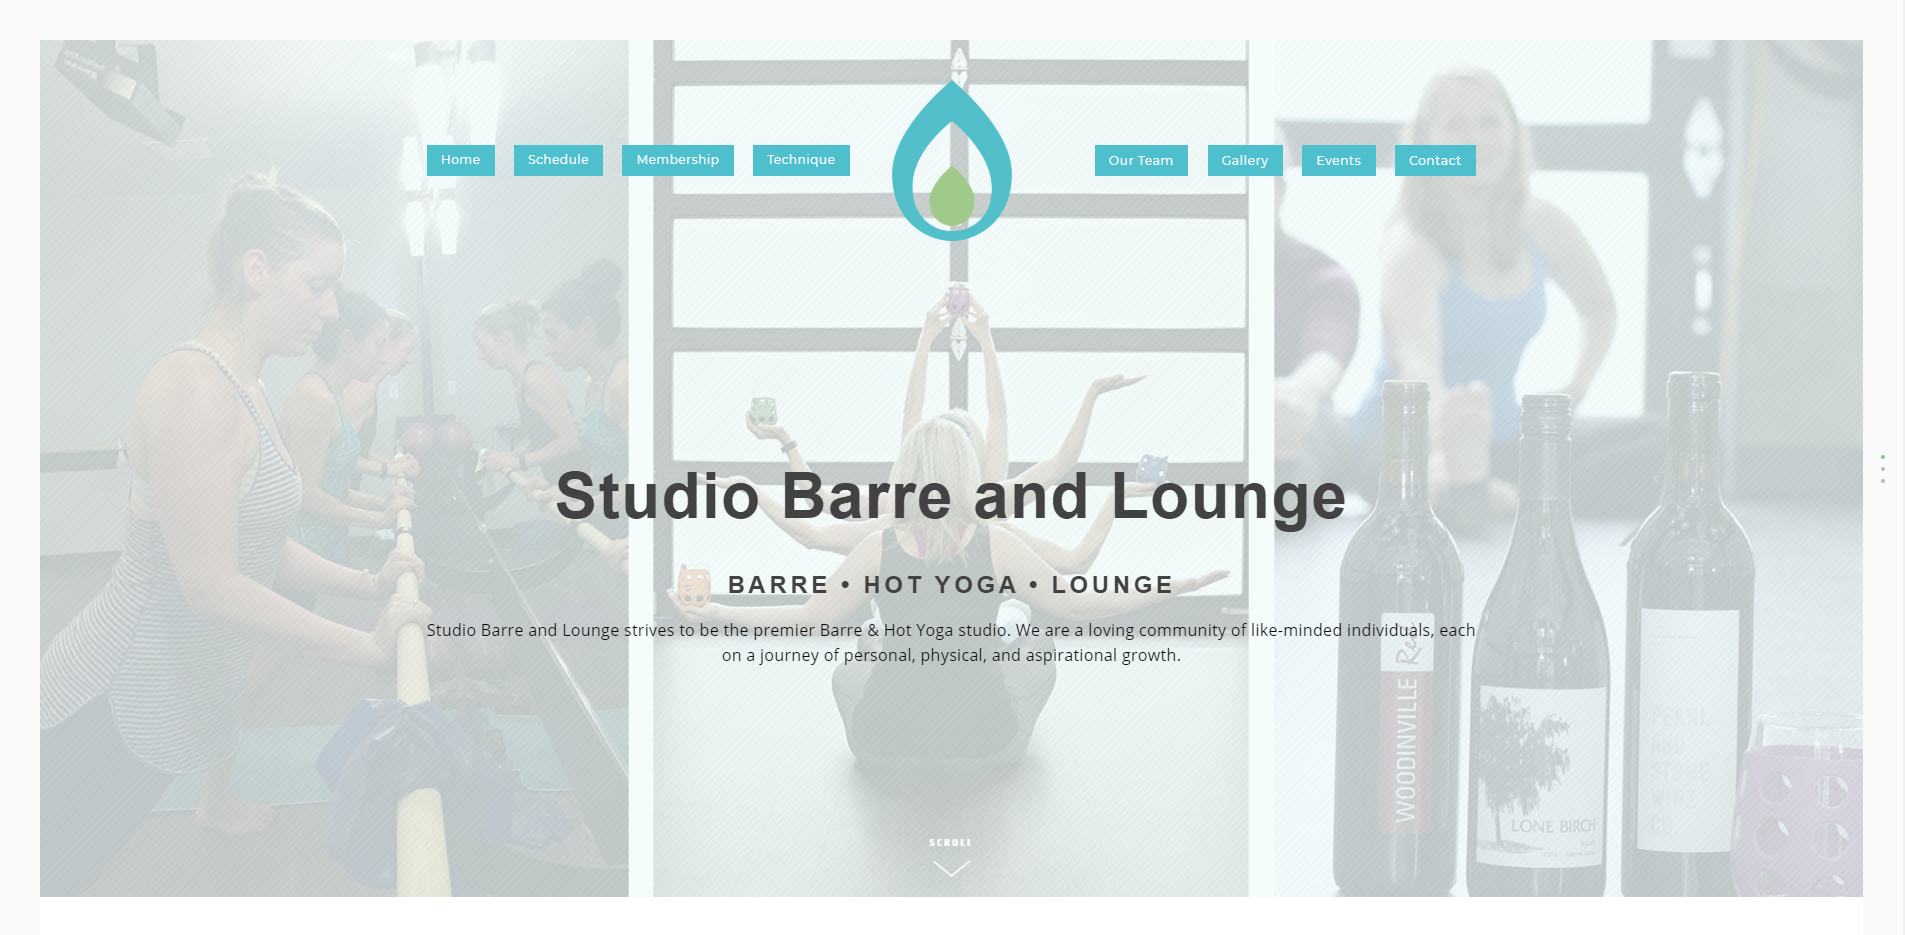 Home page screen shot for Studio Barre and Lounge